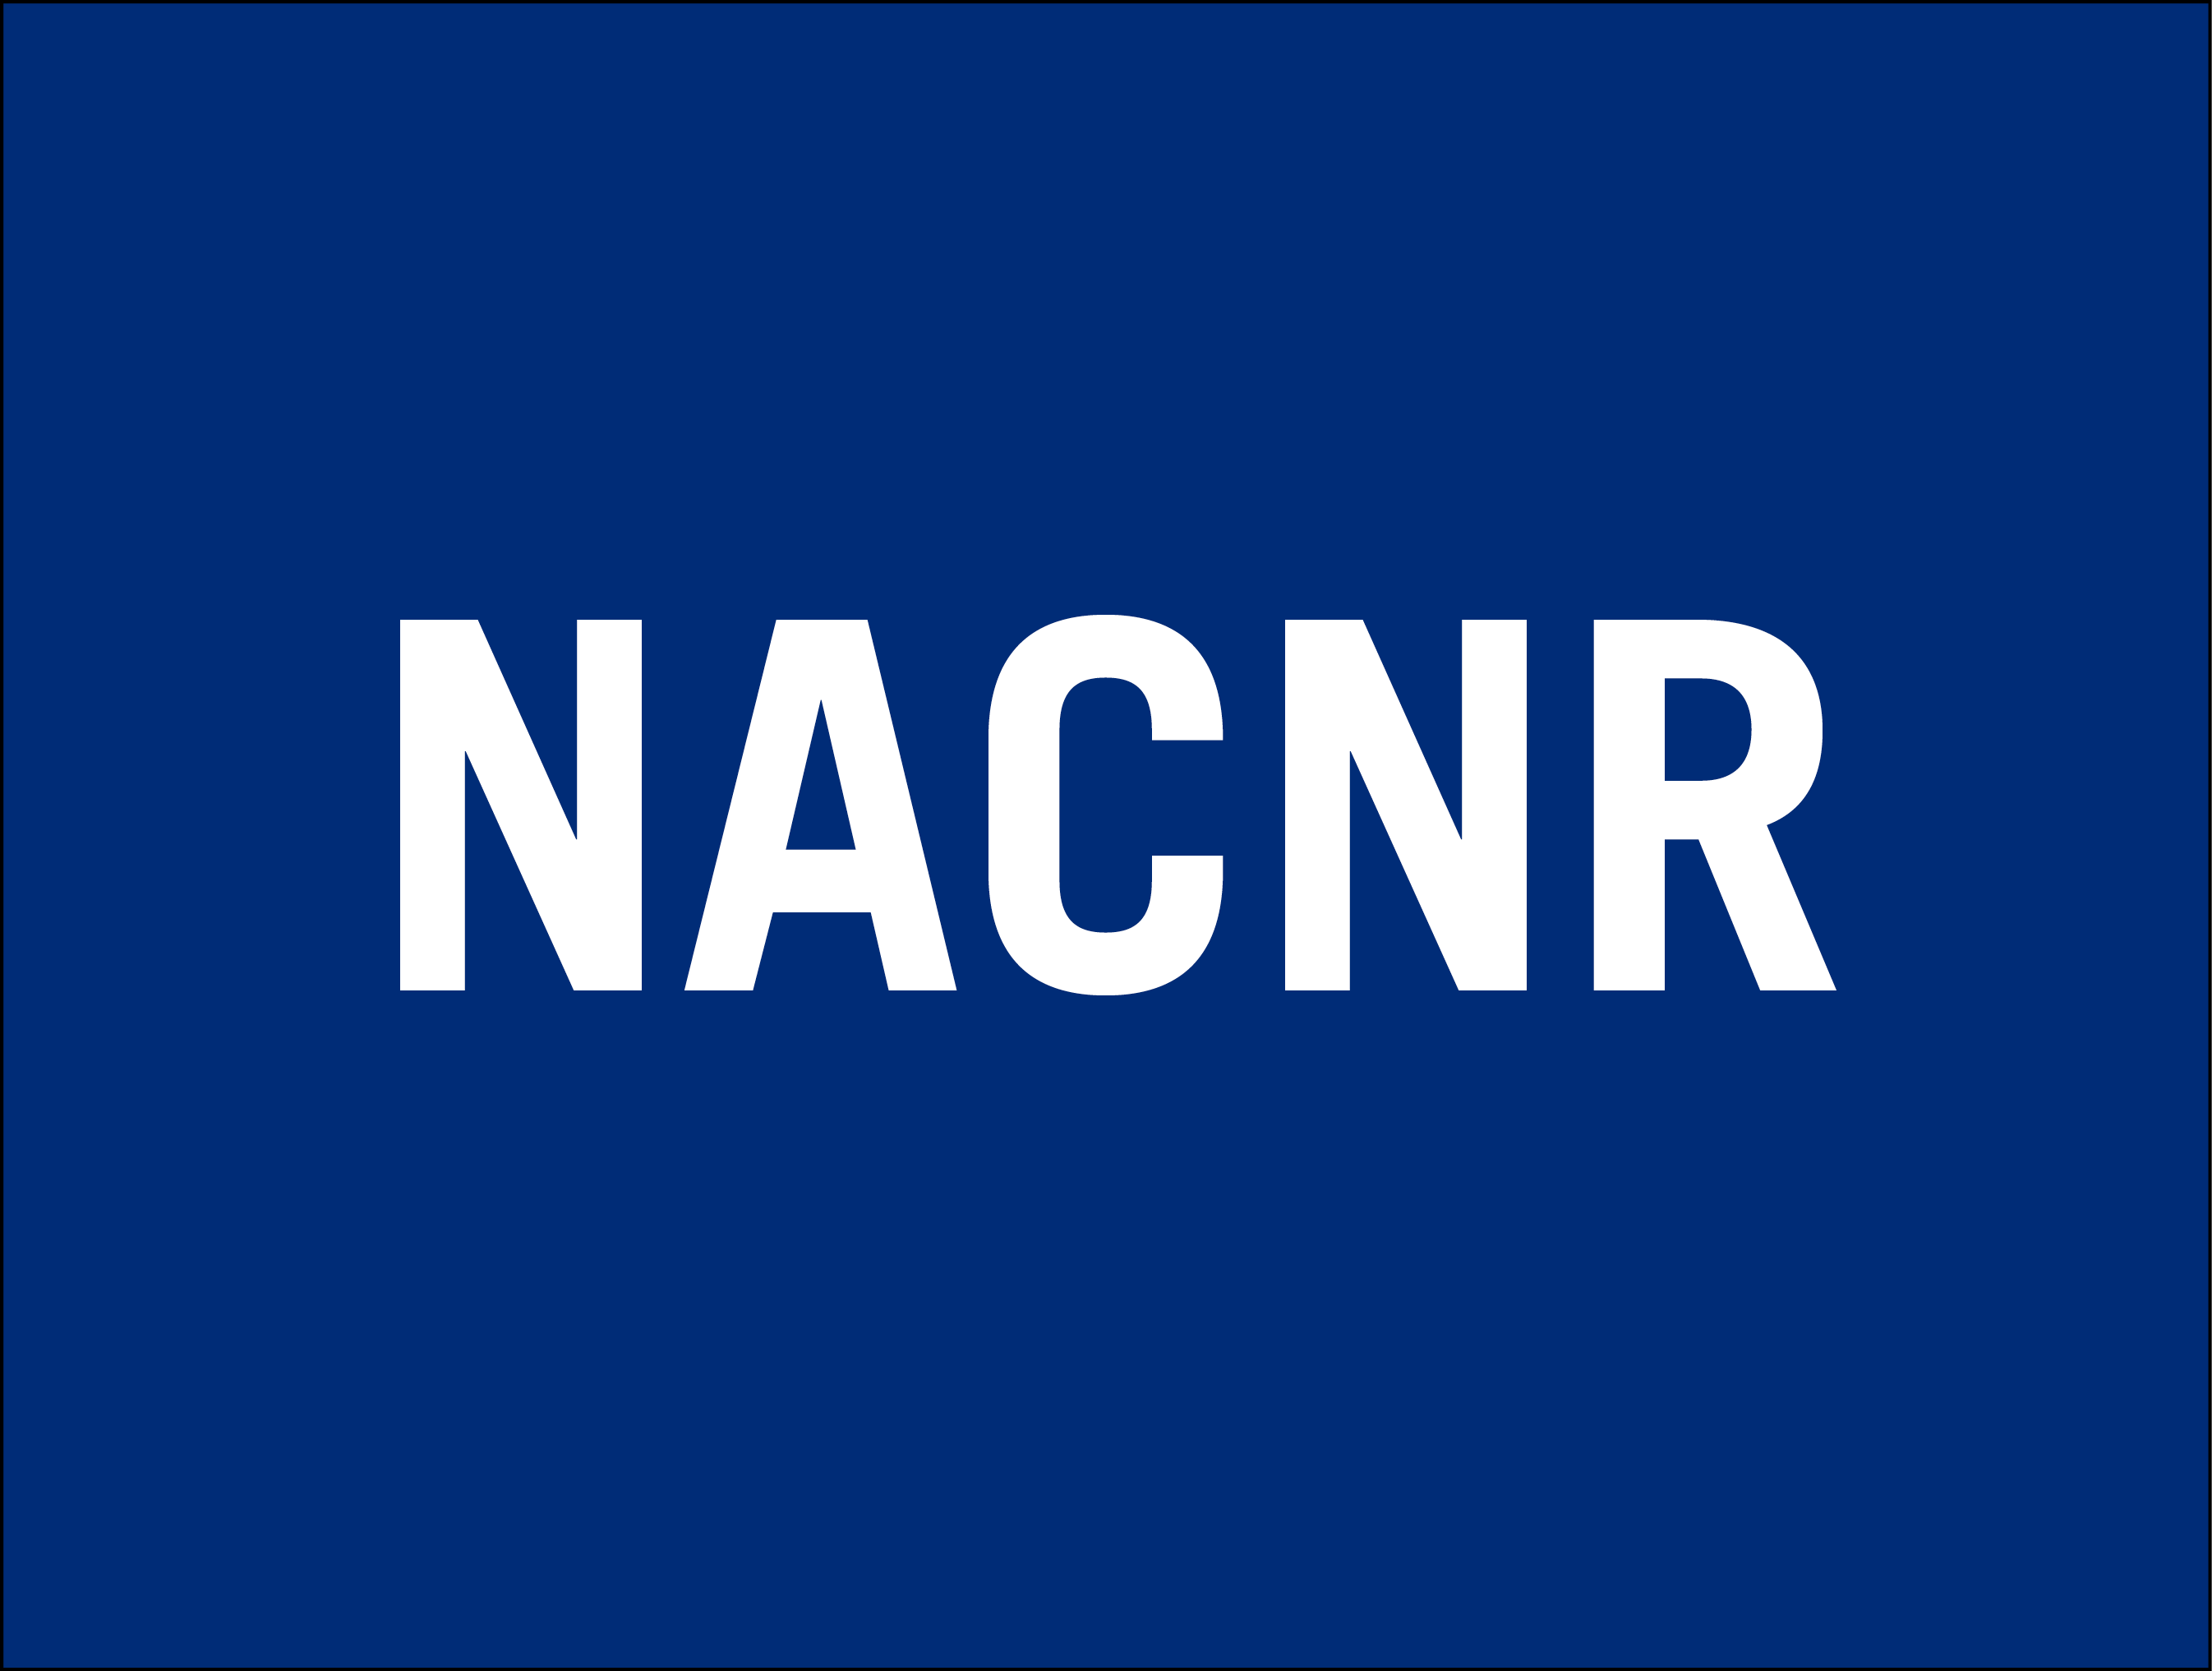 letters NACNR on blue background